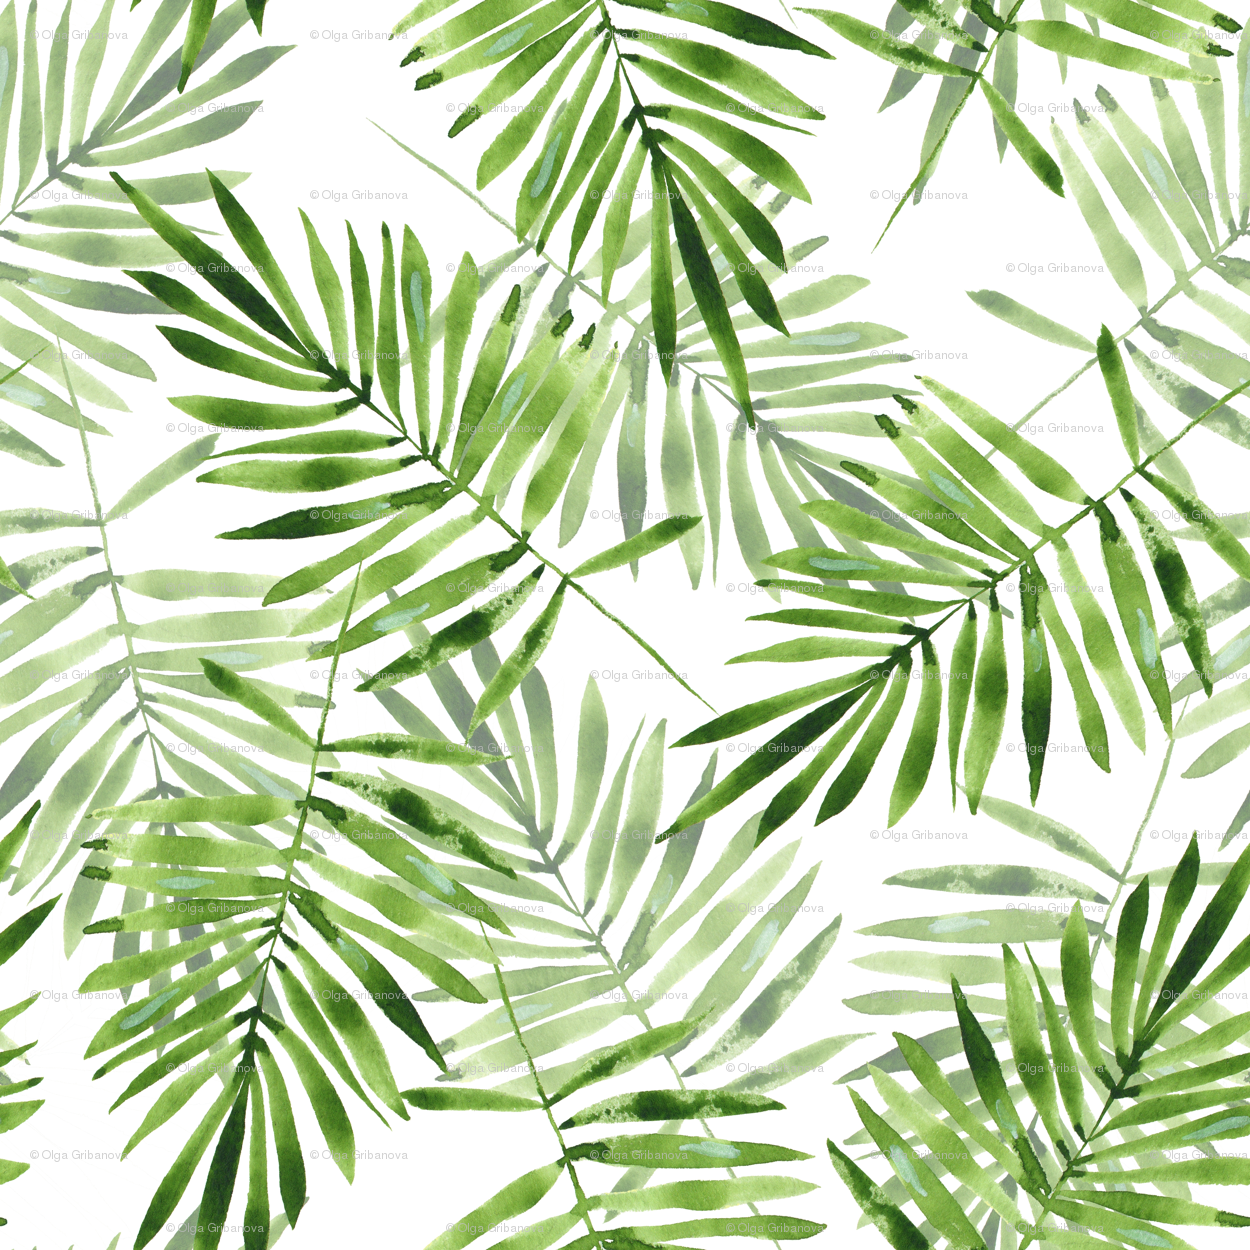 green palm leaves fabric gribanessa spoonflower